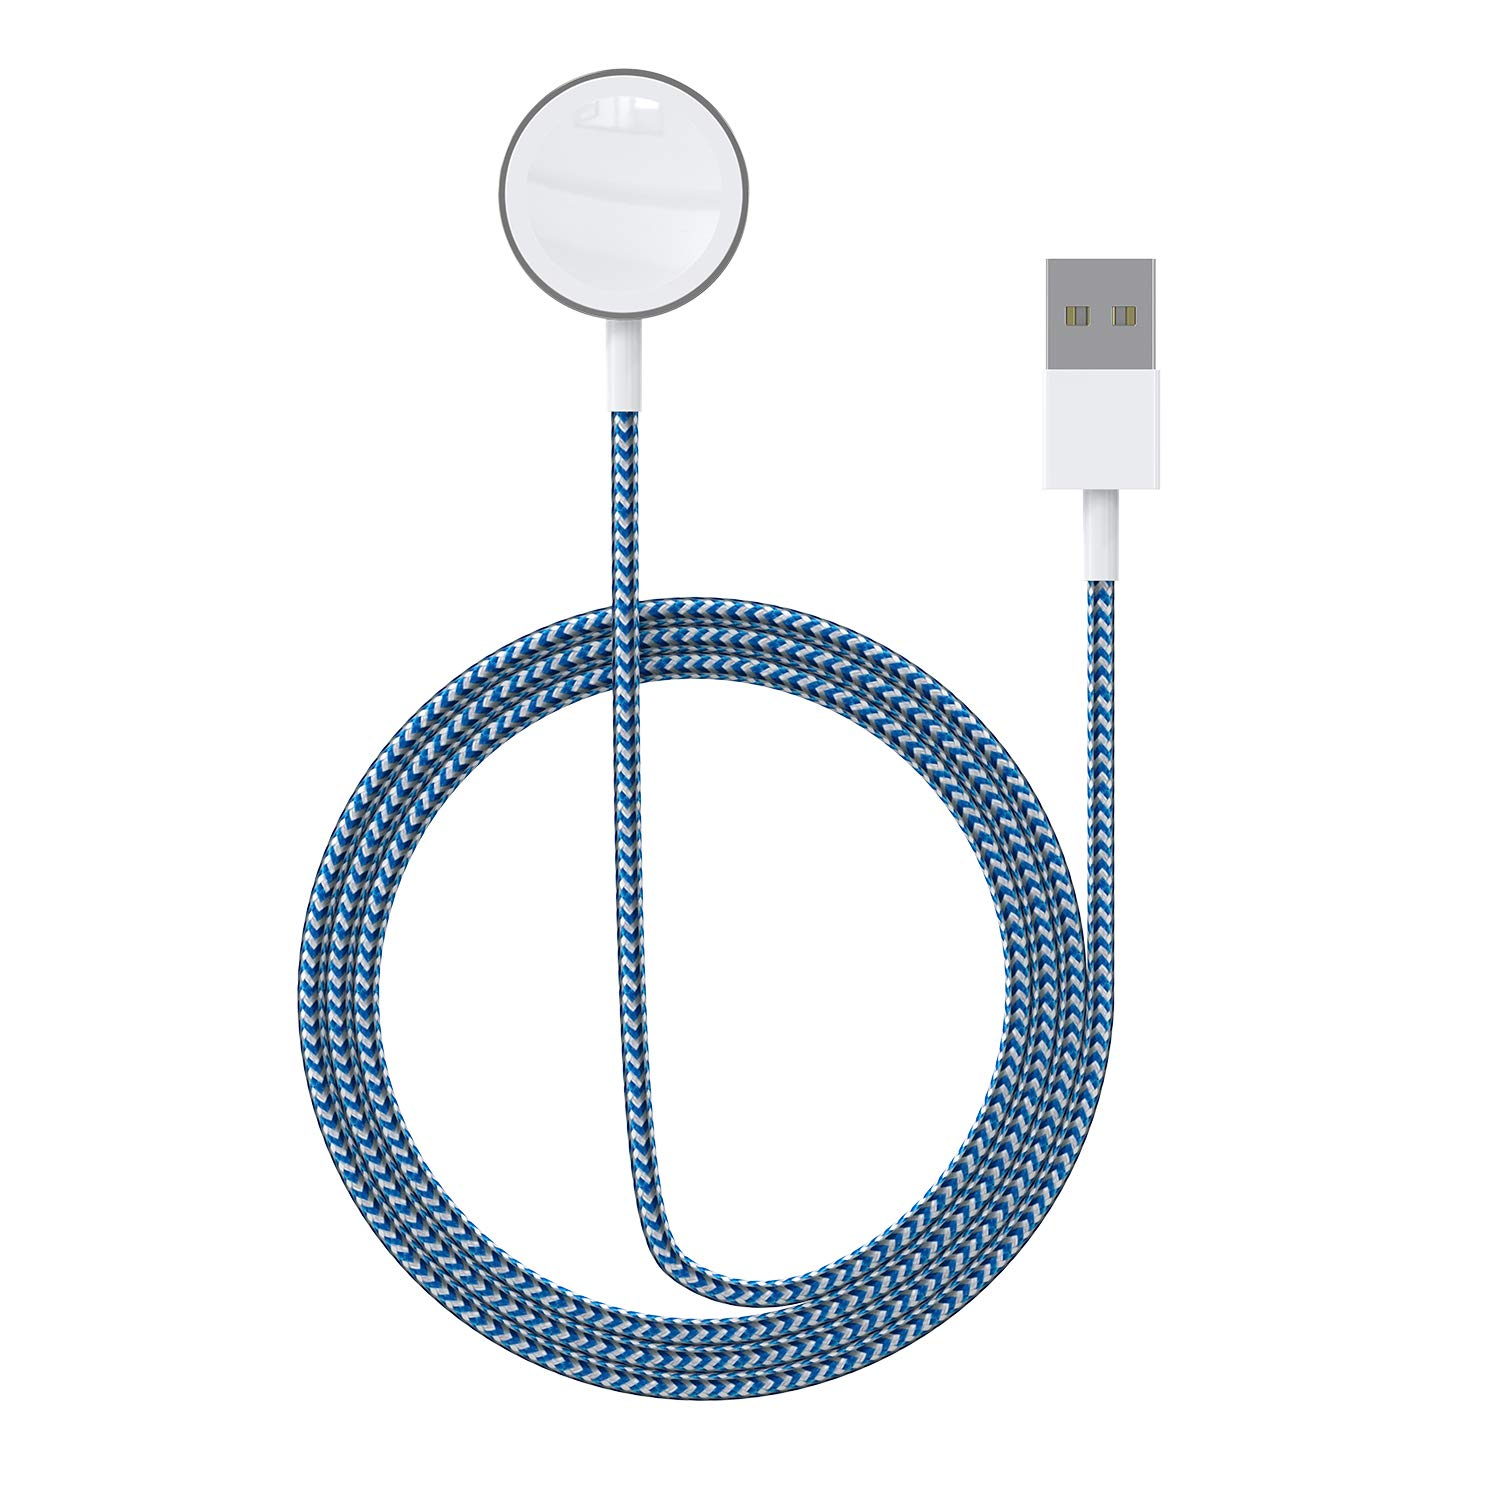 ASIANE Compatible for Apple iWatch Charger,Magnetic Wireless Portable Charger,iWatch Nylon Braided Charging Cable Cord Compatible for Apple Watch Series 4 3 2 1 All 44mm 40mm 42mm 38mm by Asiane